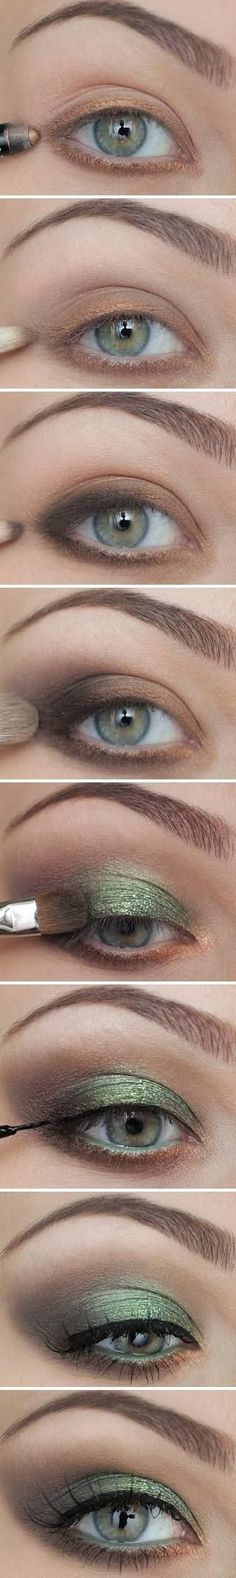 101 Eye Makeup Tutorials Around WWW